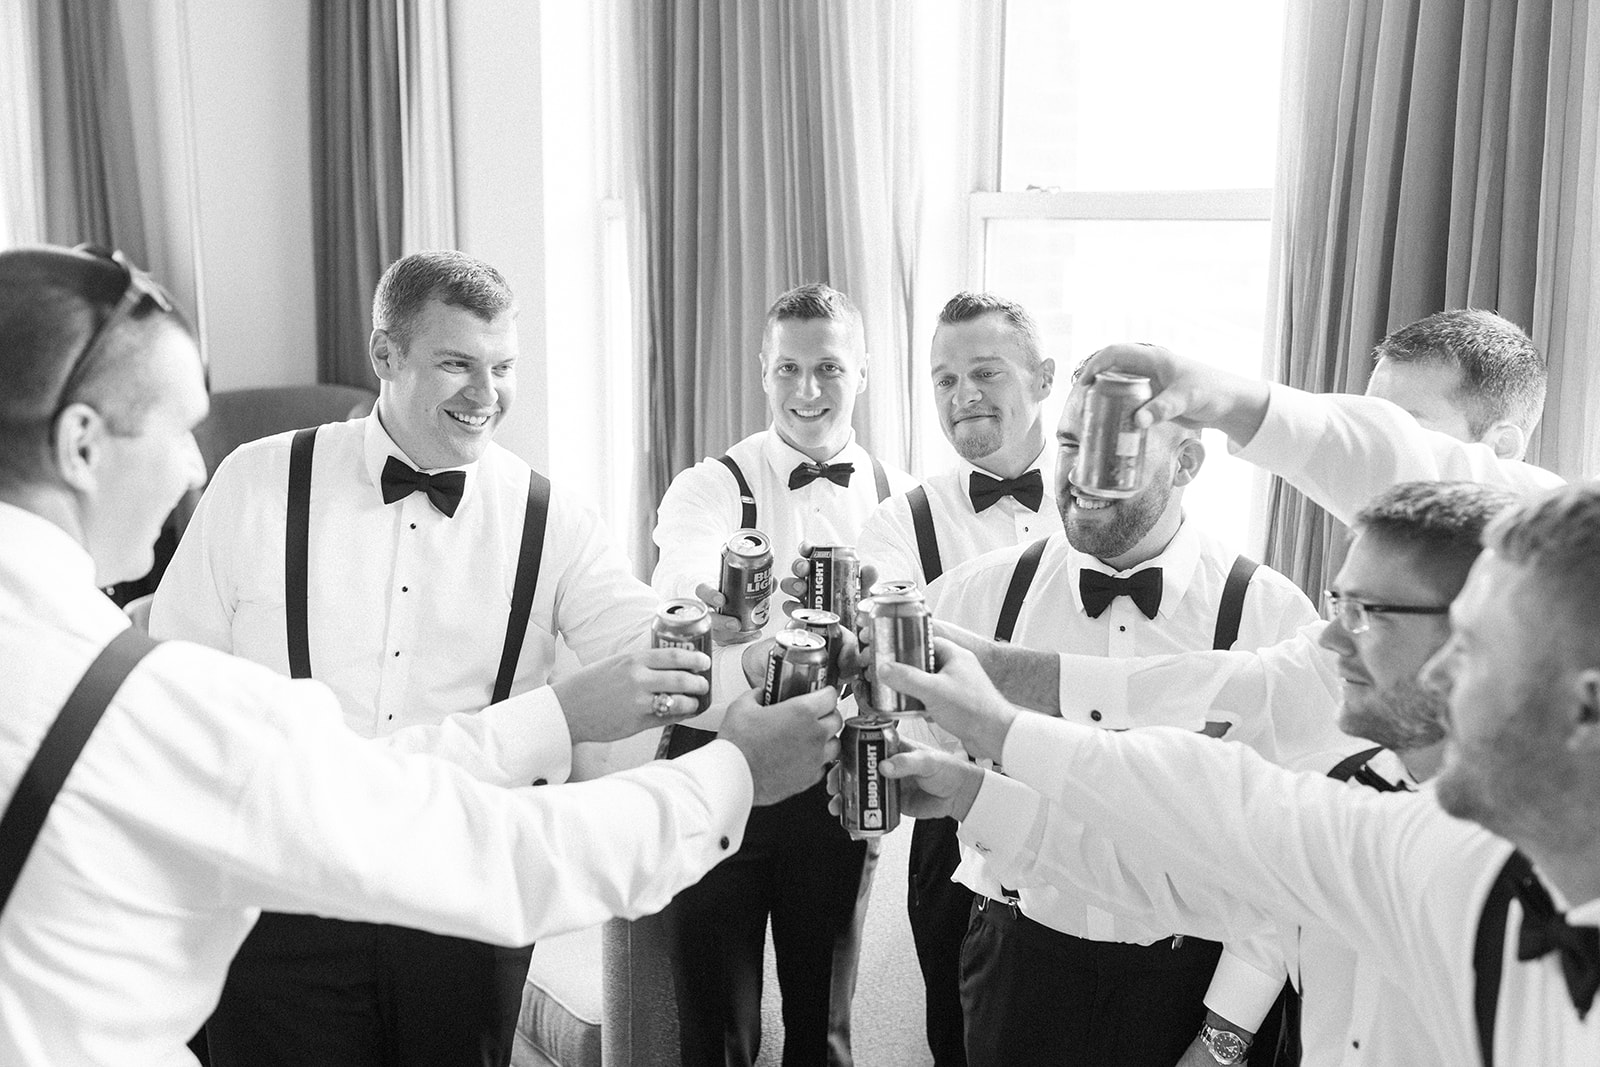 Groom and groomsmen getting ready in black tuxedos and bow ties for Pittsburgh wedding at PNC Park planned by Exhale Events. Find more wedding inspiration at exhale-events.com!